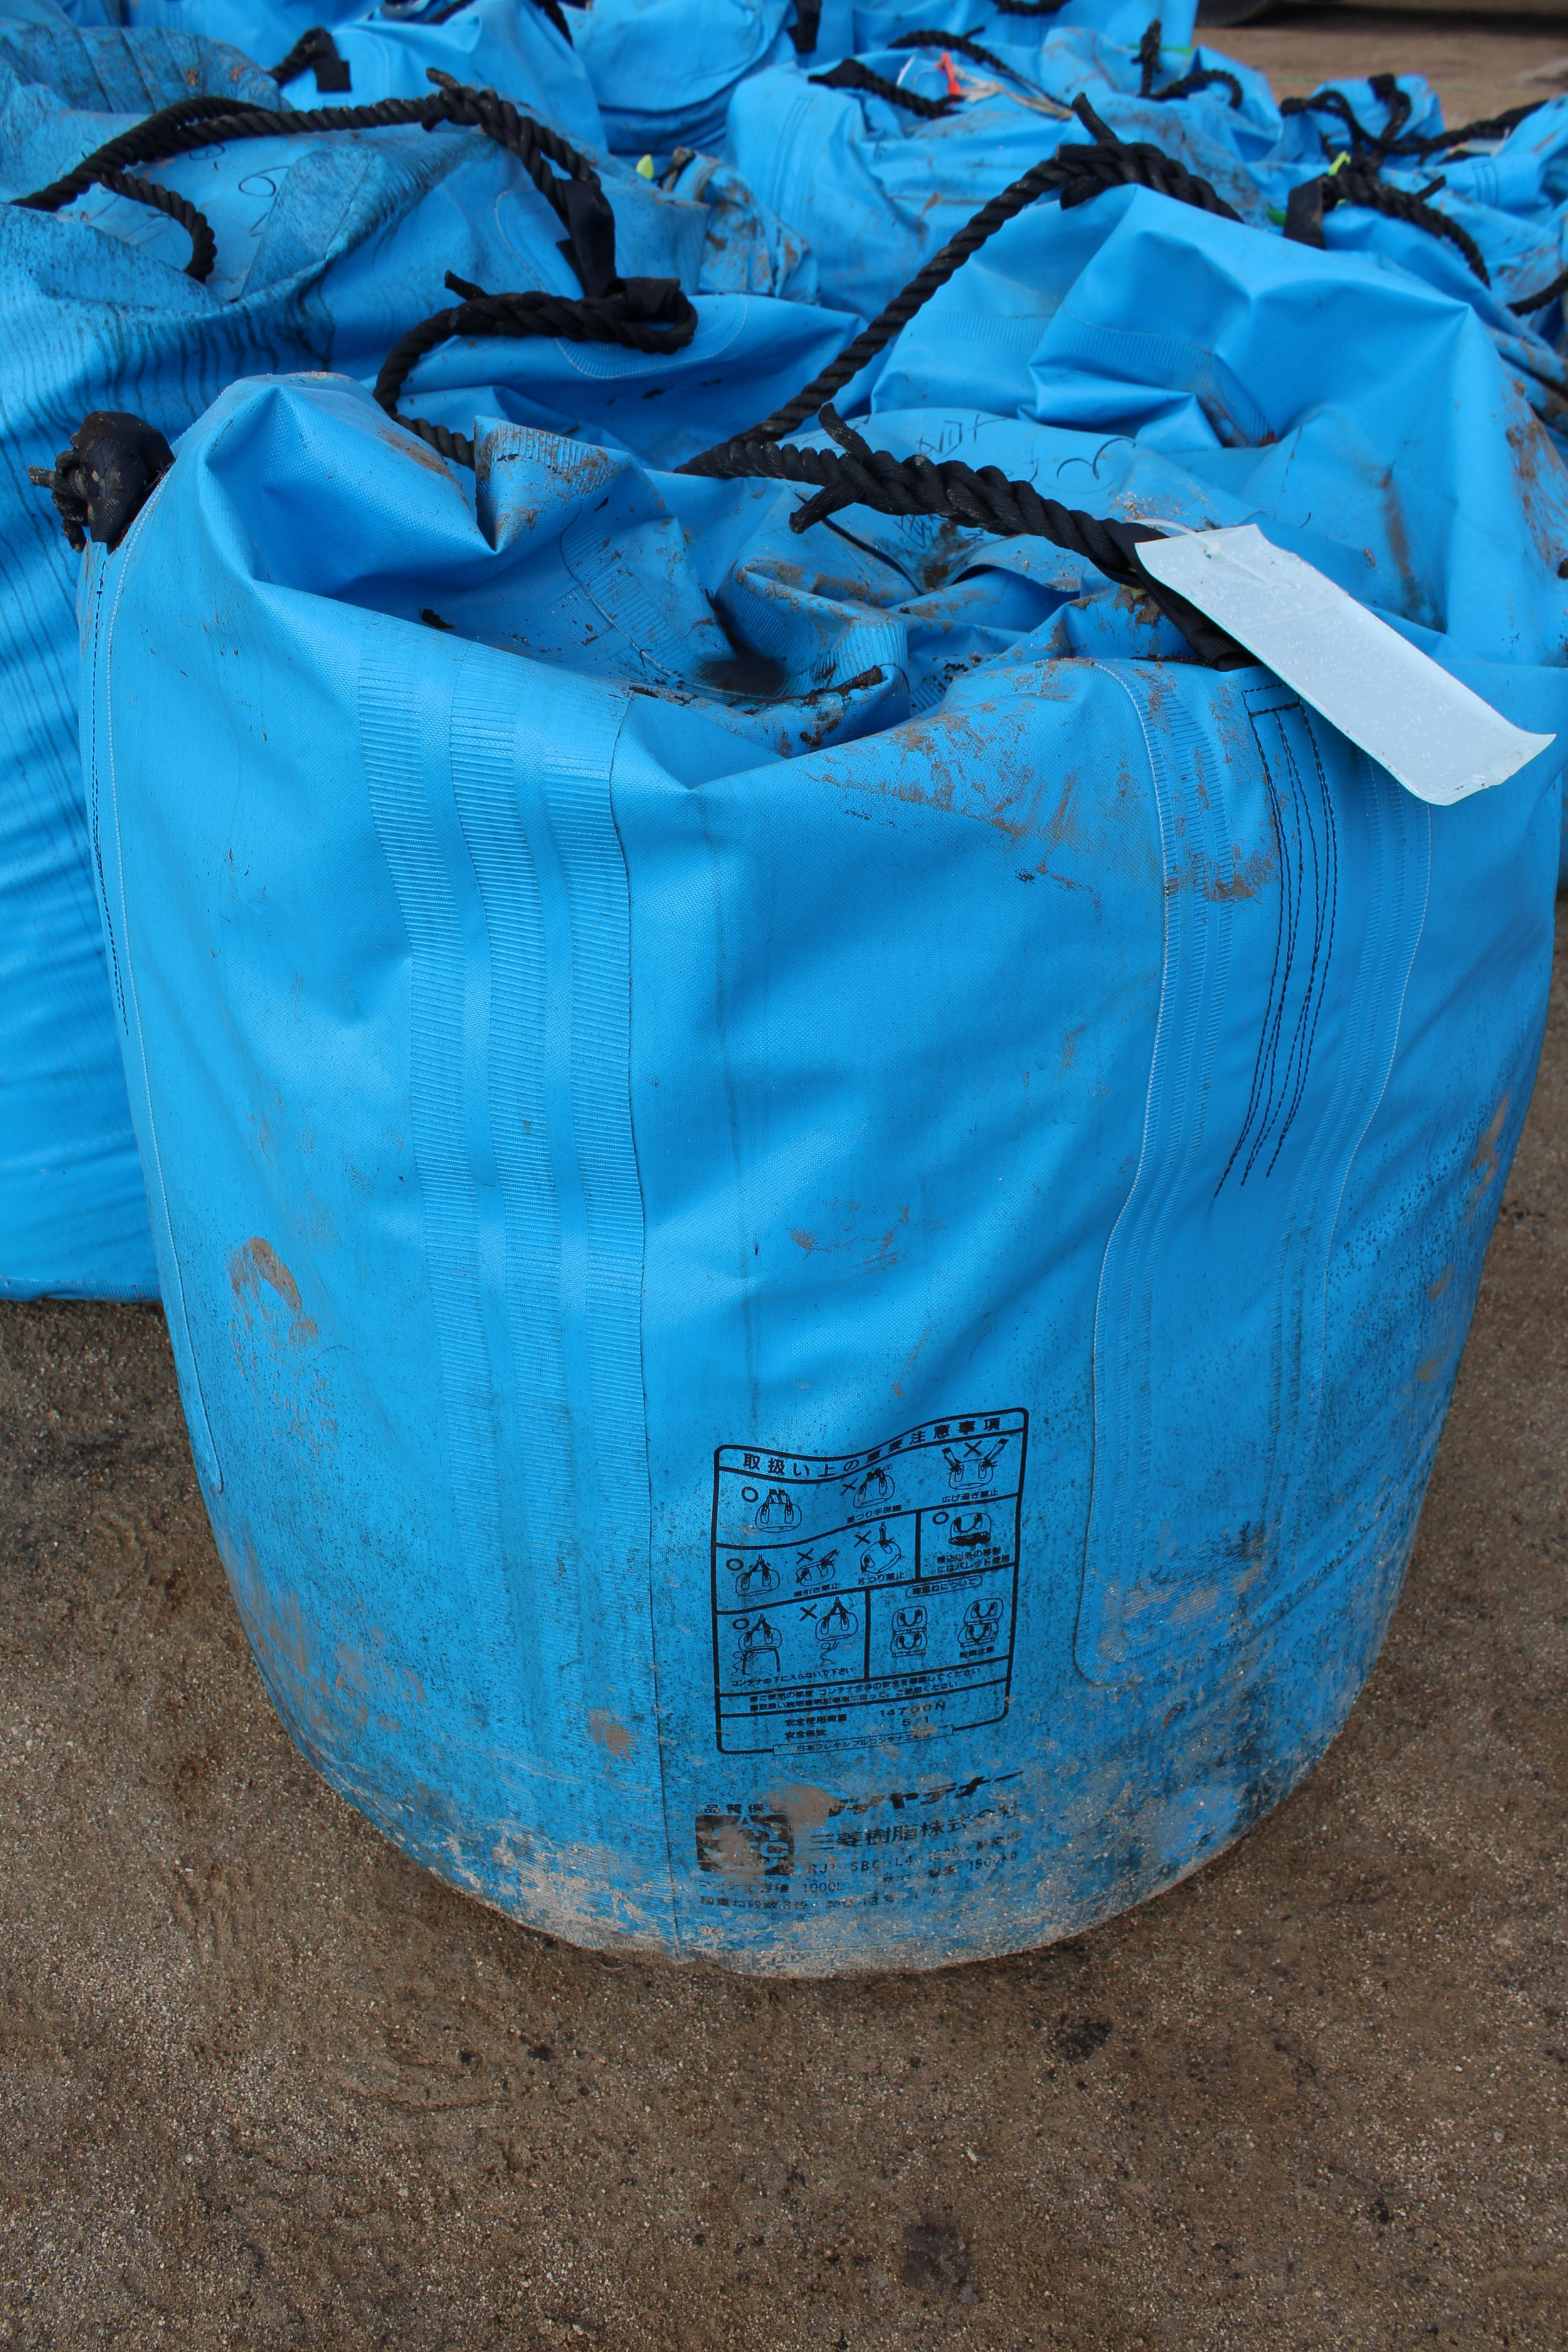 Bags of radioative waste awaiting some final, safe resting place.10.JPG